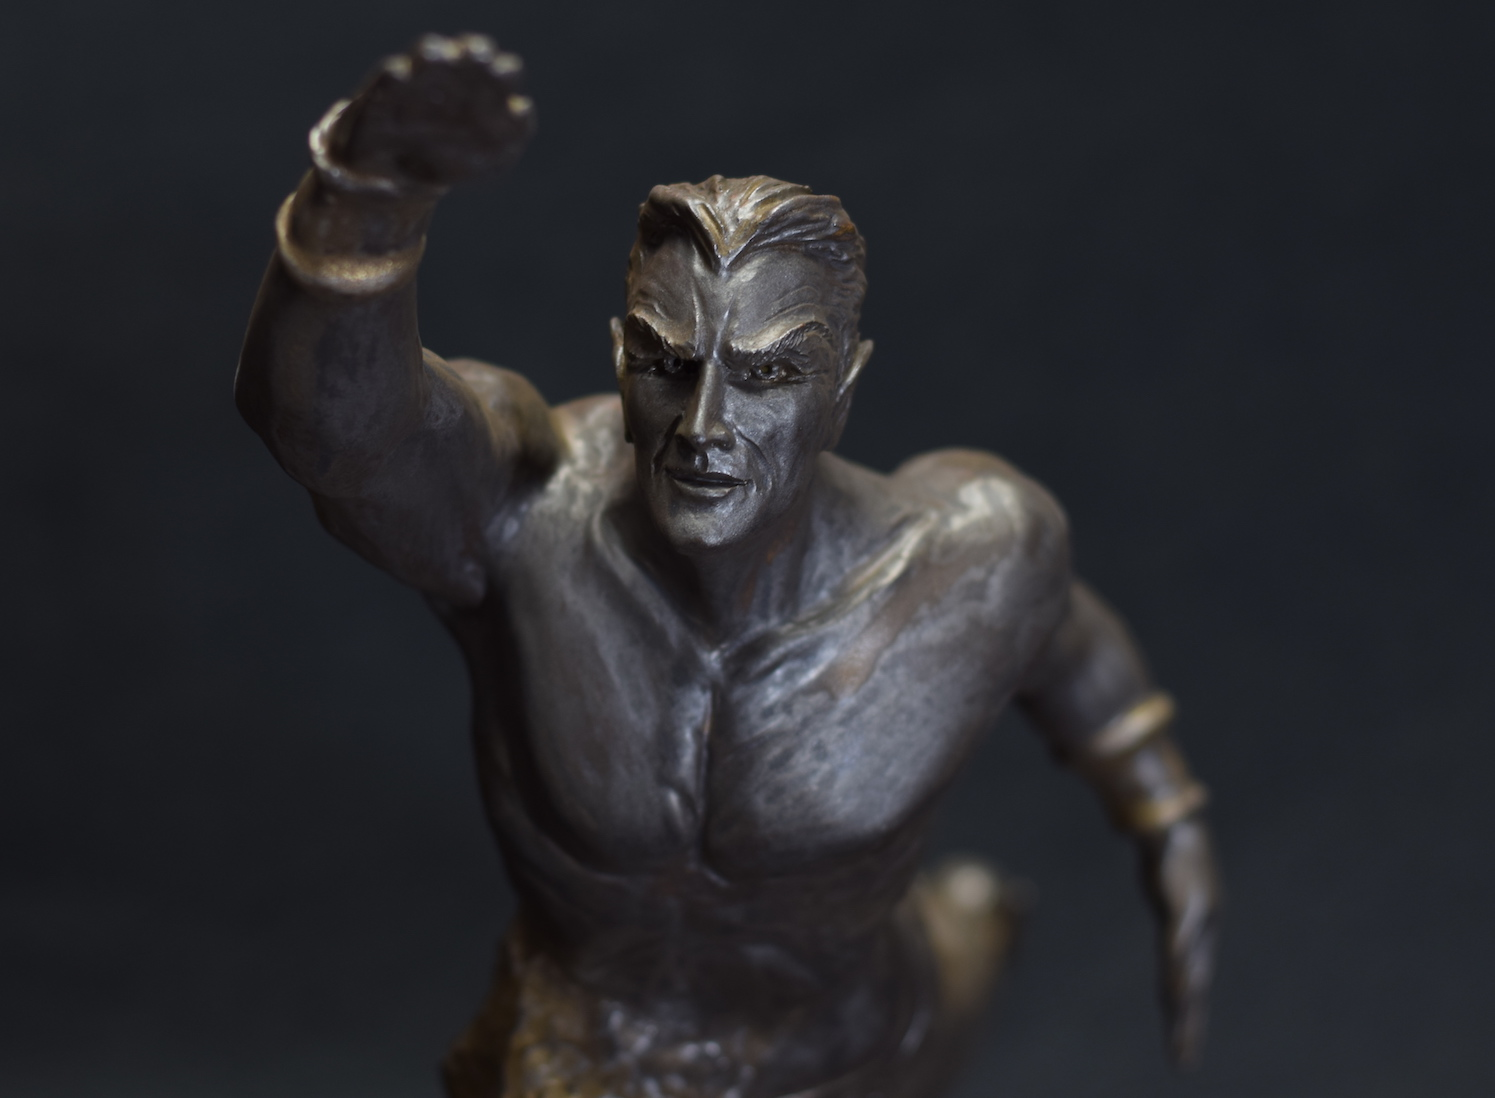 Prince Namor Submariner